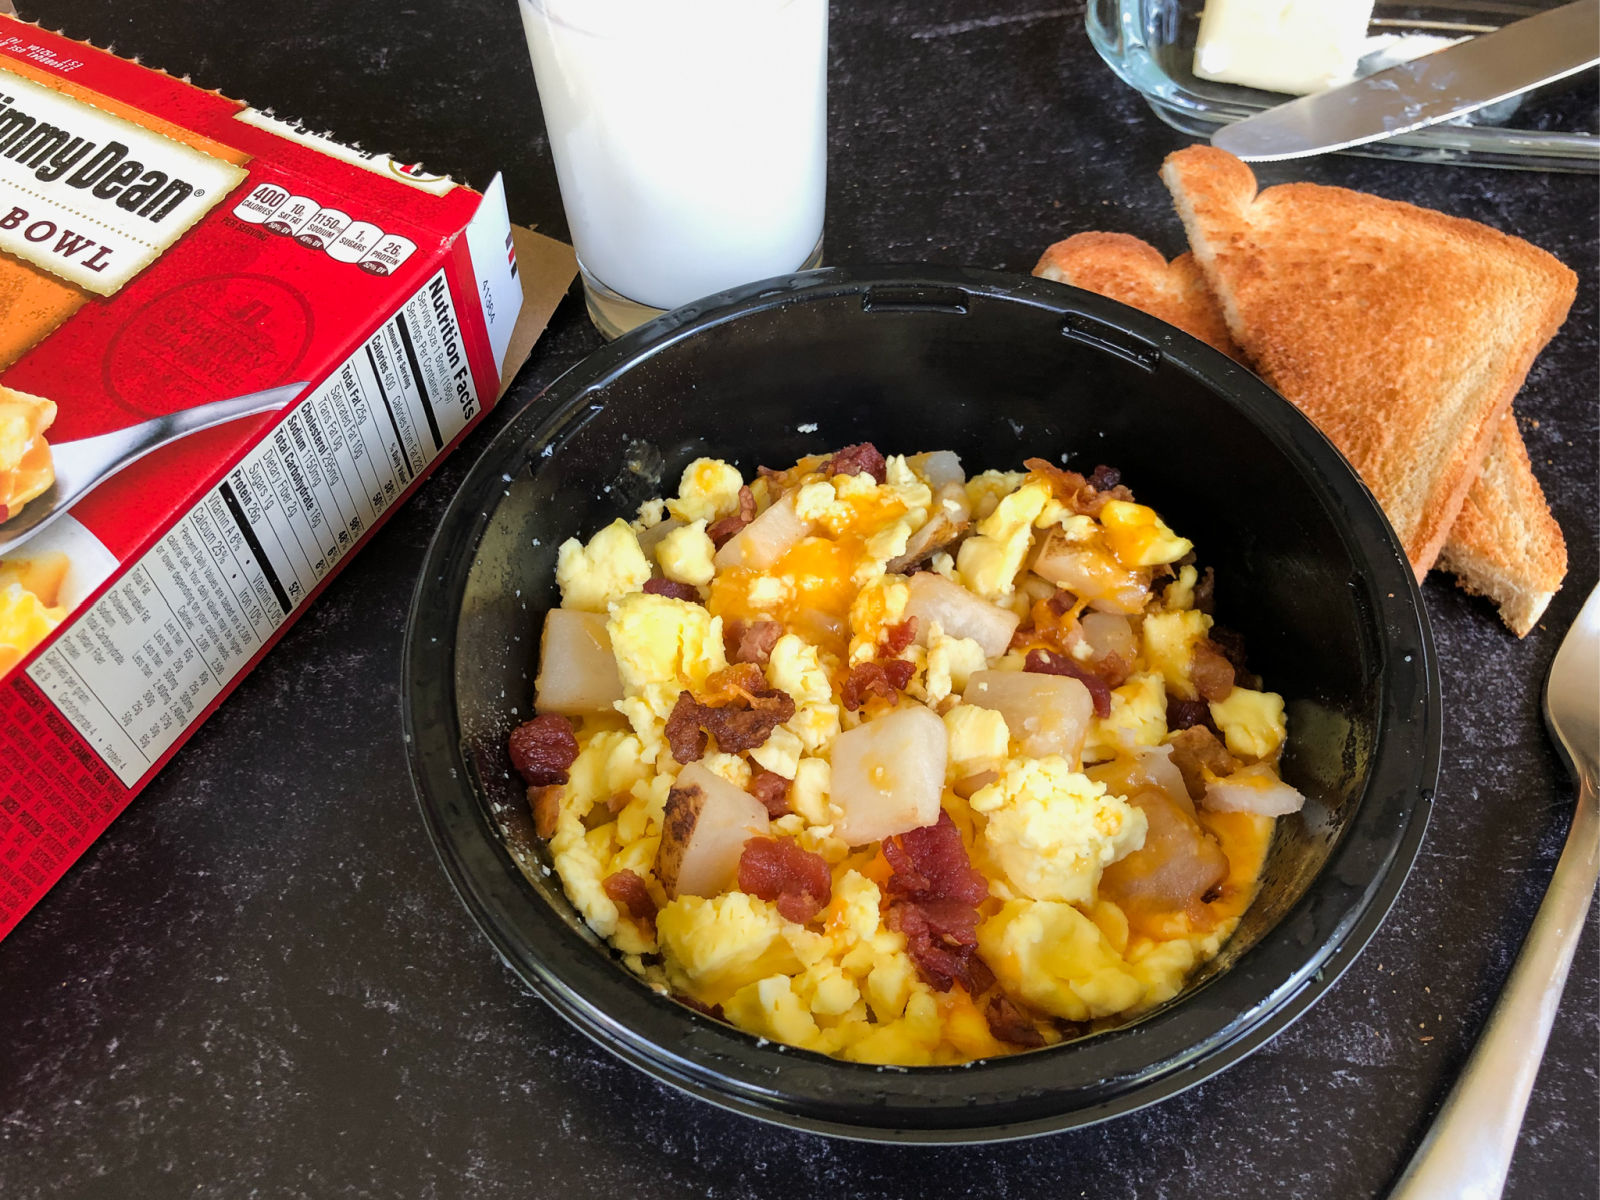 Jimmy Dean & Wright Brand Have Your Breakfast Needs Covered! on I Heart Publix 2